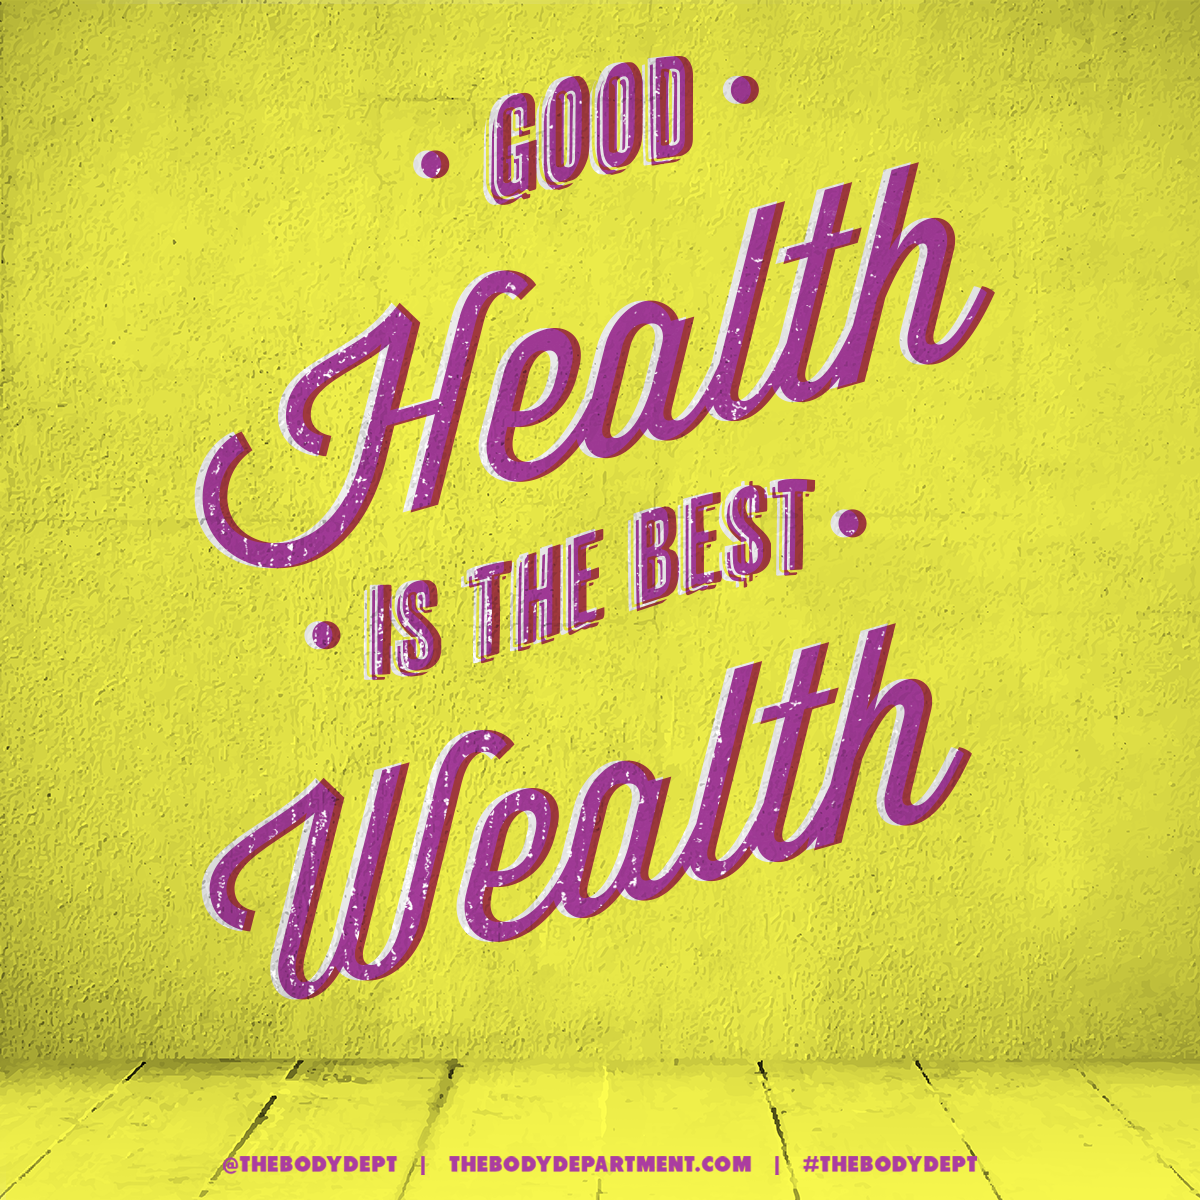 Shawn Johnson's the body department - Fitspiration Best Wealth